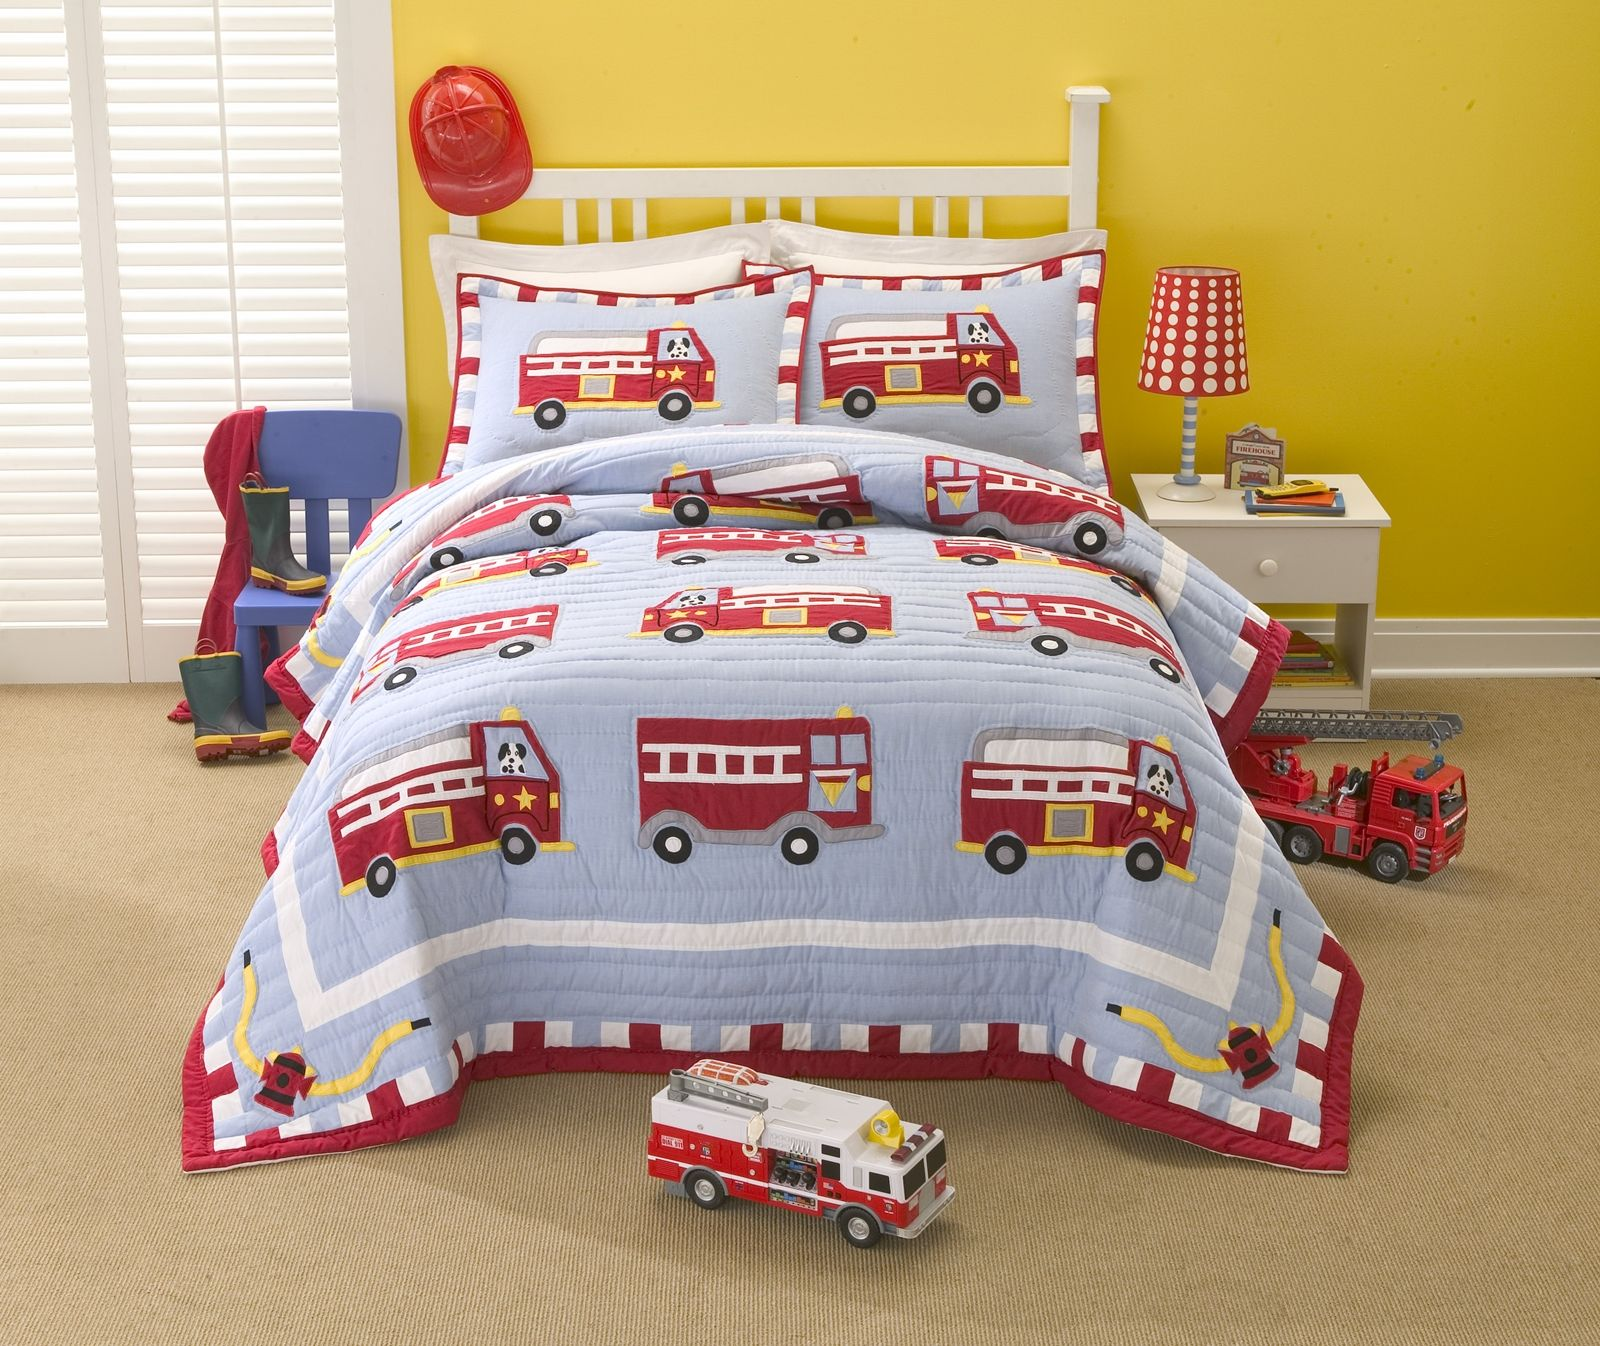 Fire Trucks, Hook and Ladder, Fire Hoses and an adorable